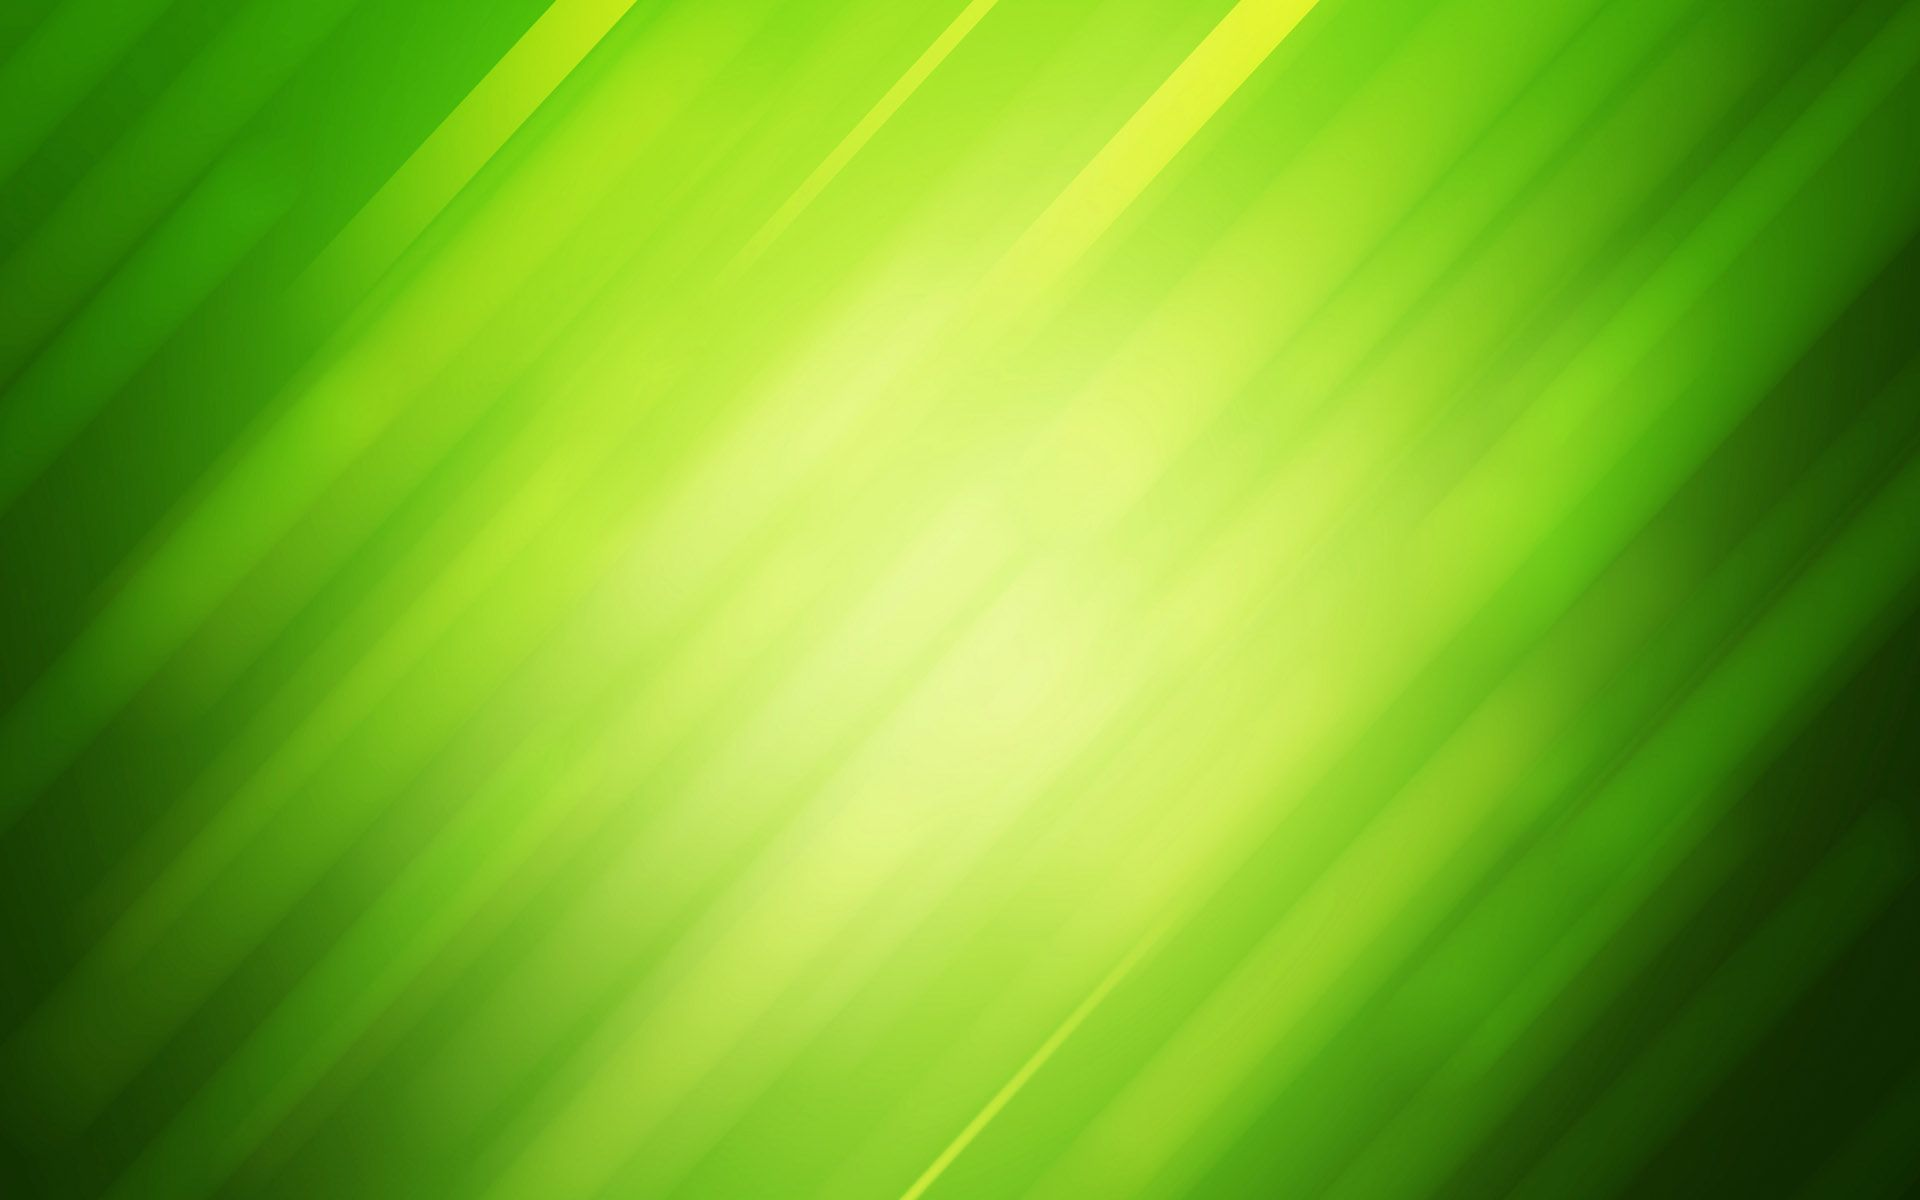 Cool Green Wallpaper Green Wallpaper Abstract Art Wallpaper